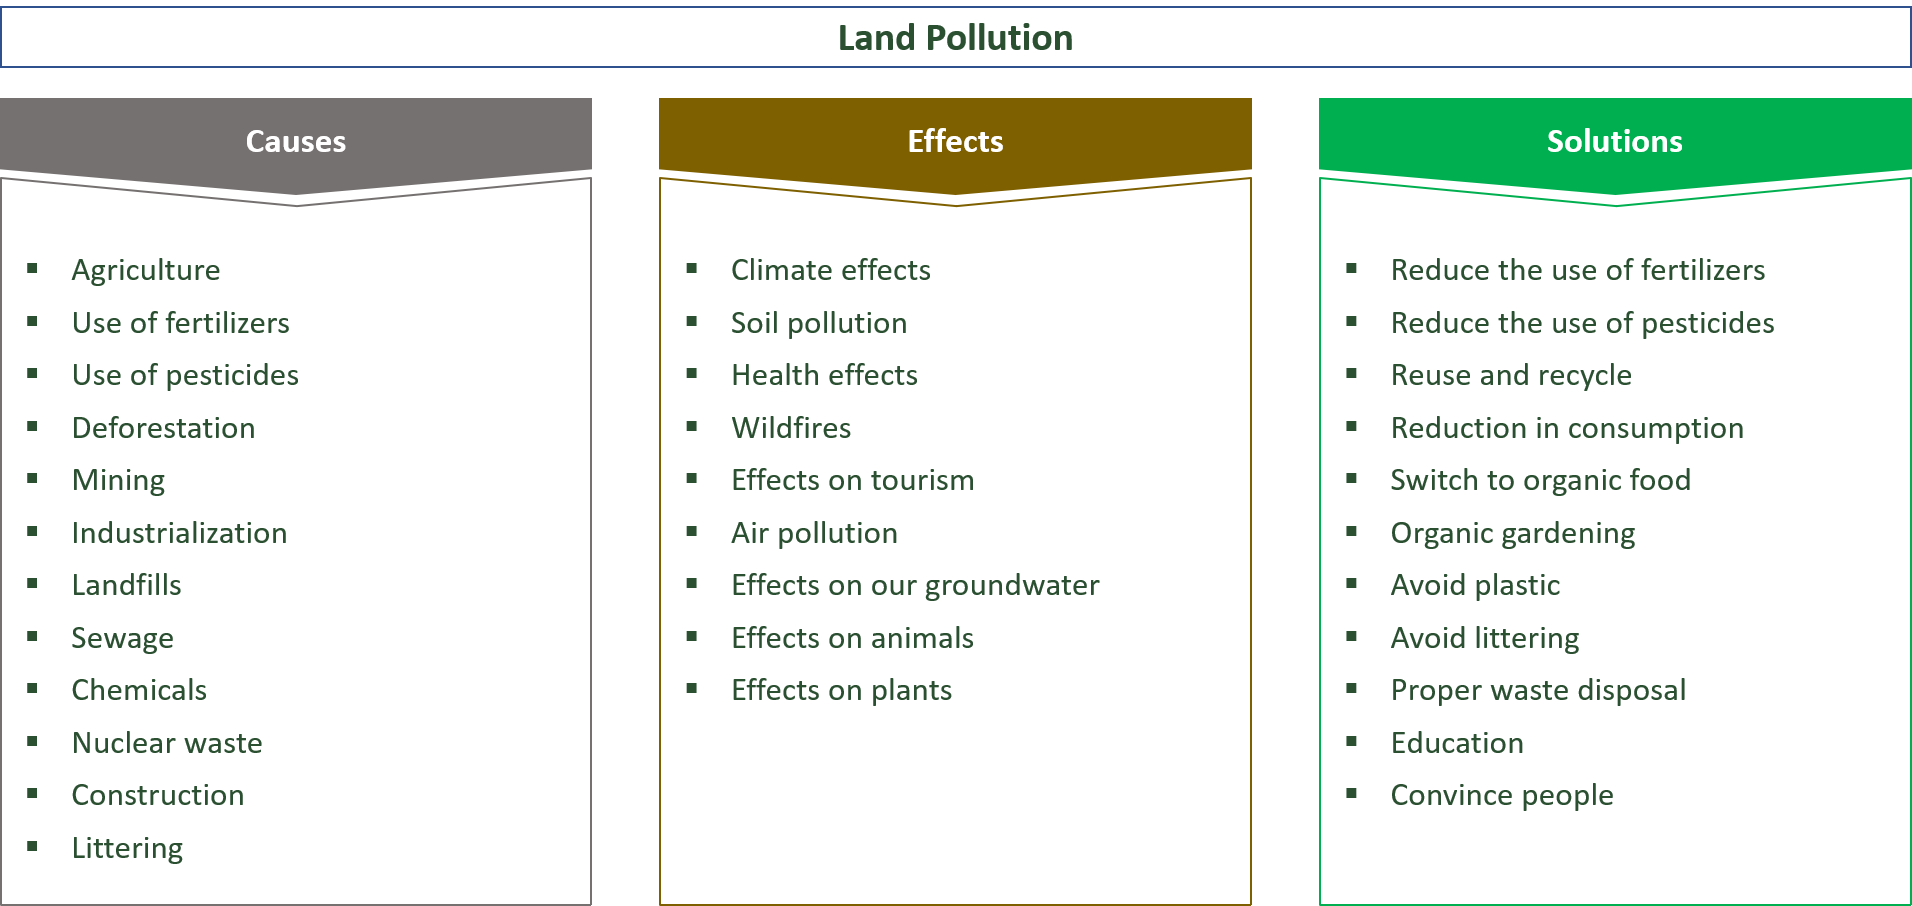 various causes, effects and solutions for land pollution